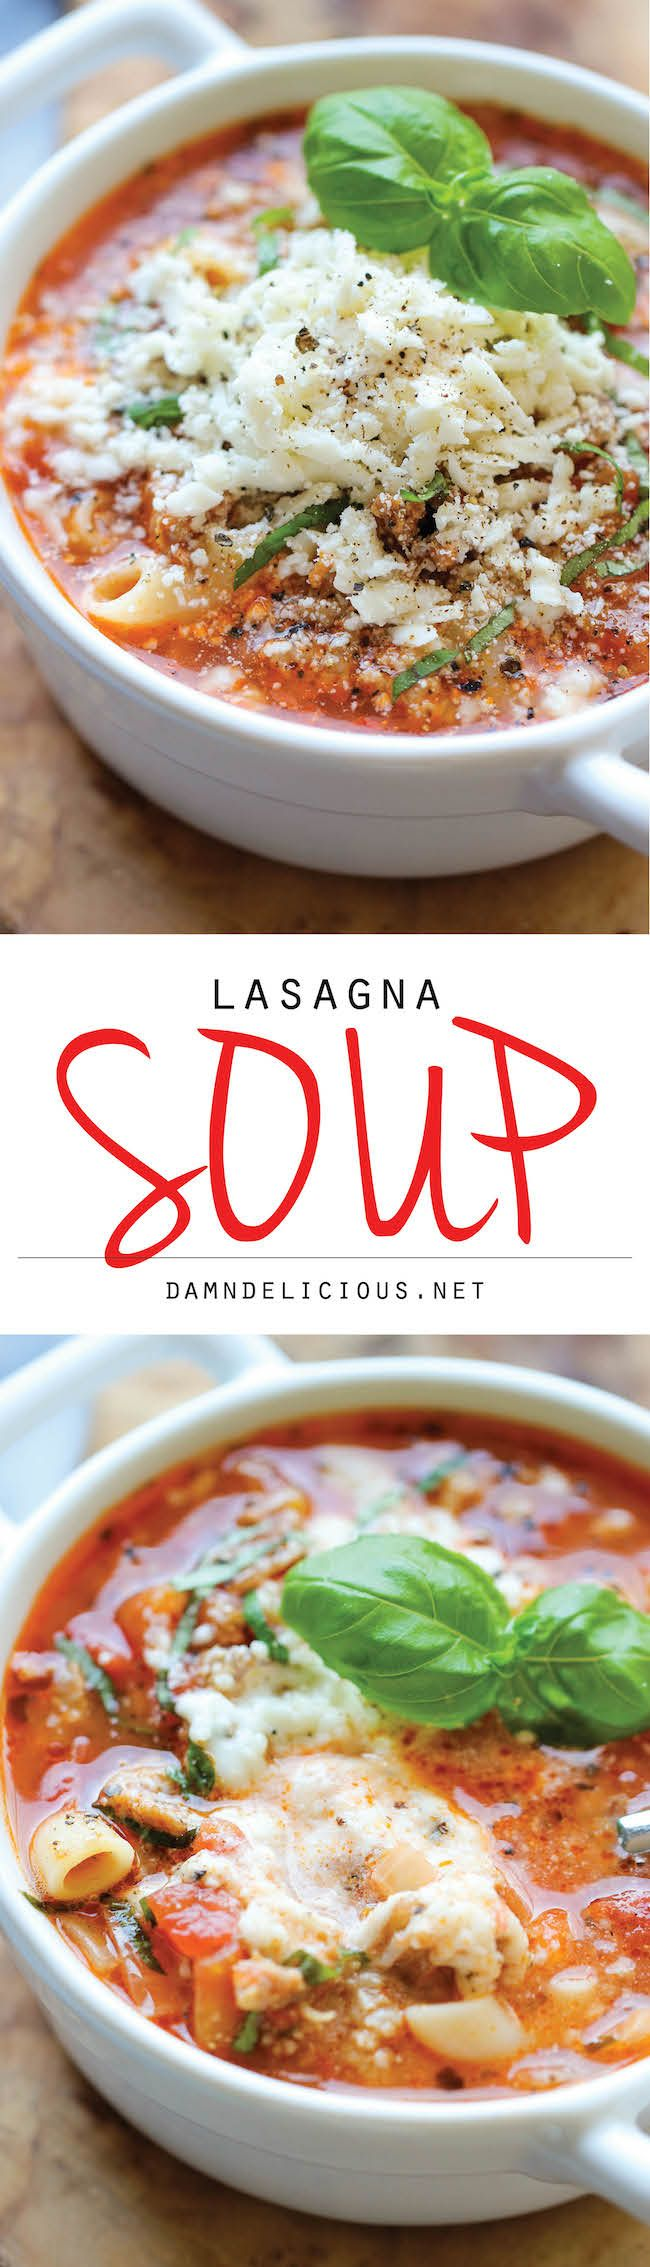 Lasagna Soup - All the flavors of lasagna in a comforting, cheesy soup with a dollop of ricotta that gets melted right into the soup! http://damndelicious.net/2013/12/14/lasgana-soup/?utm_content=buffer54094&utm_medium=social&utm_source=pinterest.com&utm_campaign=buffer